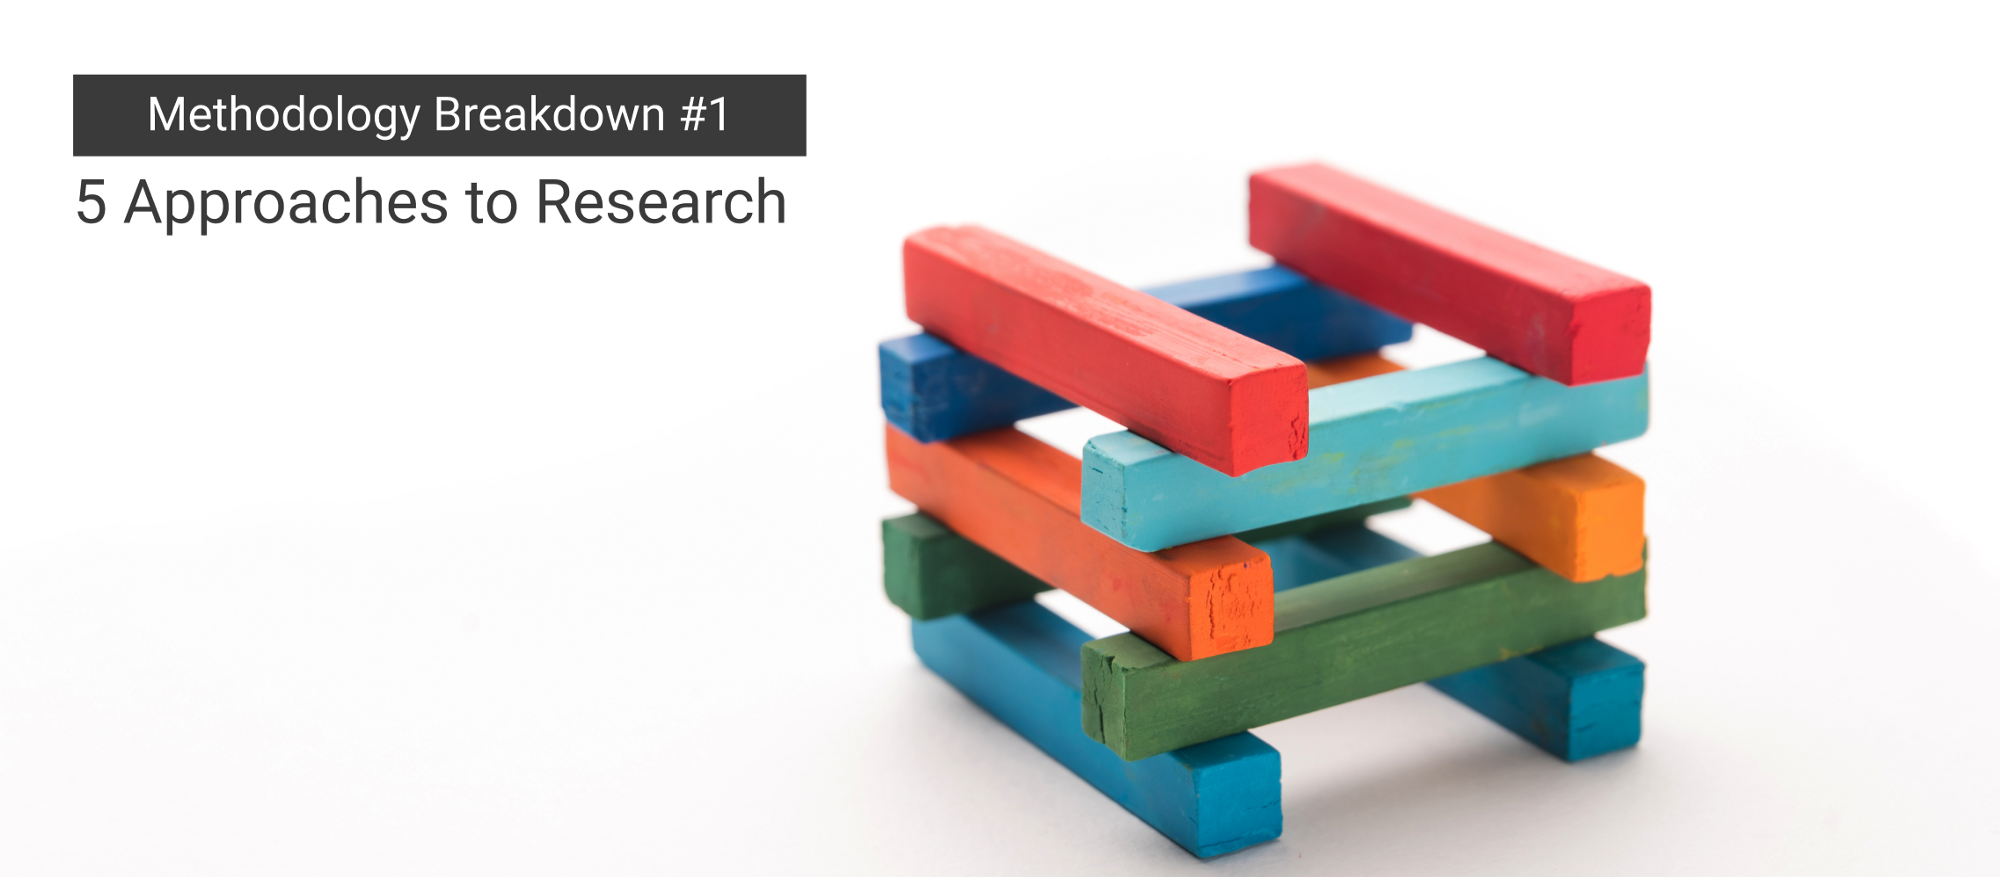 An image of bricks laid on top of each other. Text: Methodology Breakdown #1 - Approaches to Research